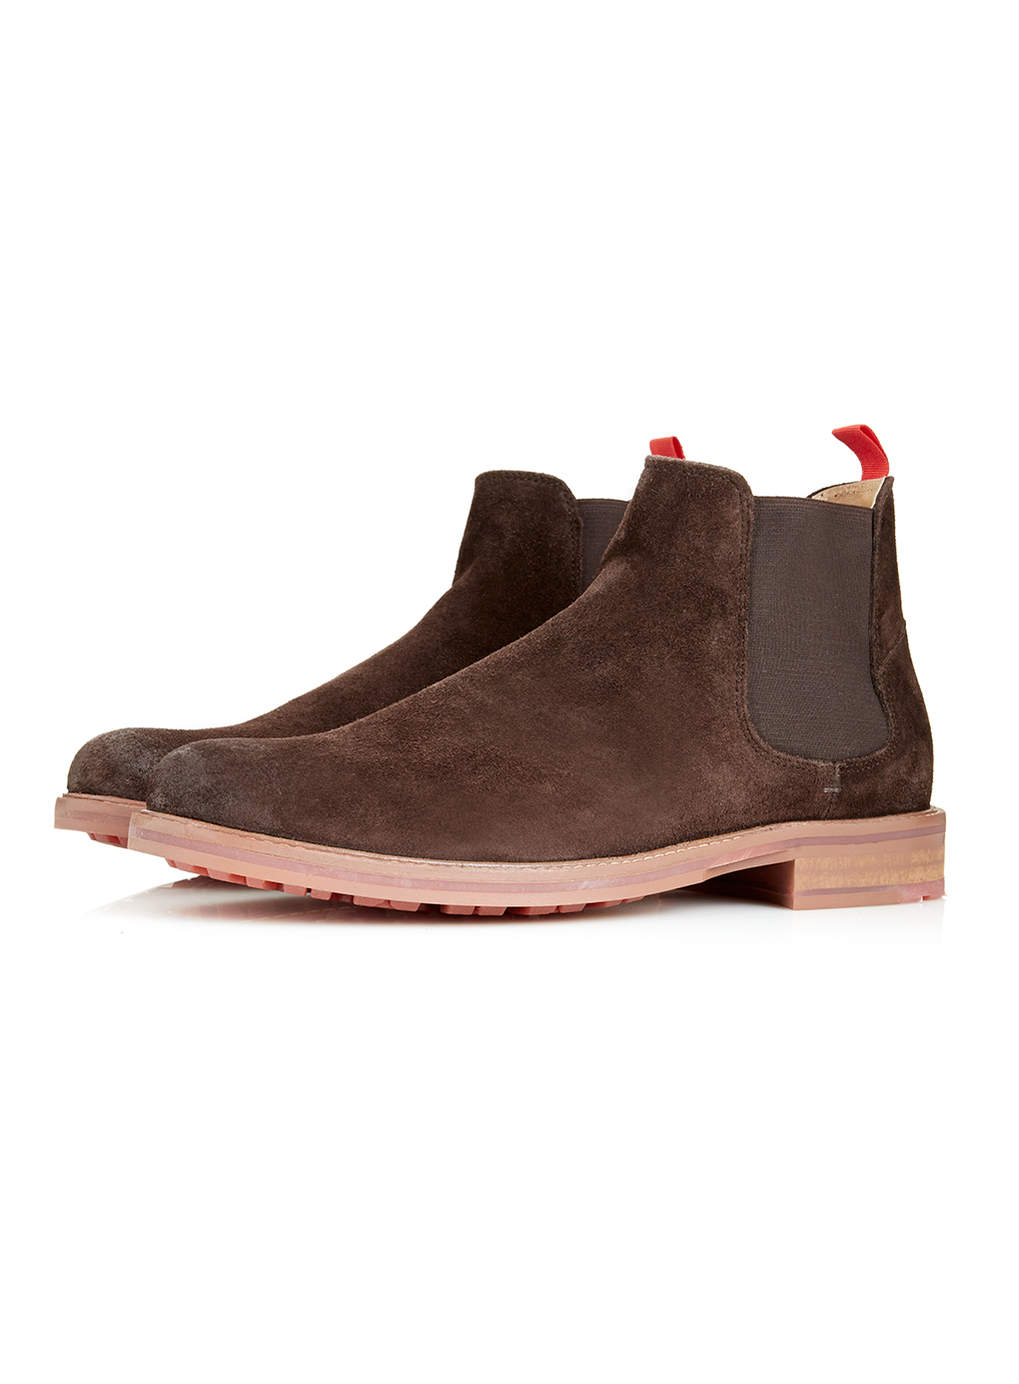 ben sherman brown suede chelsea boots in brown for lyst